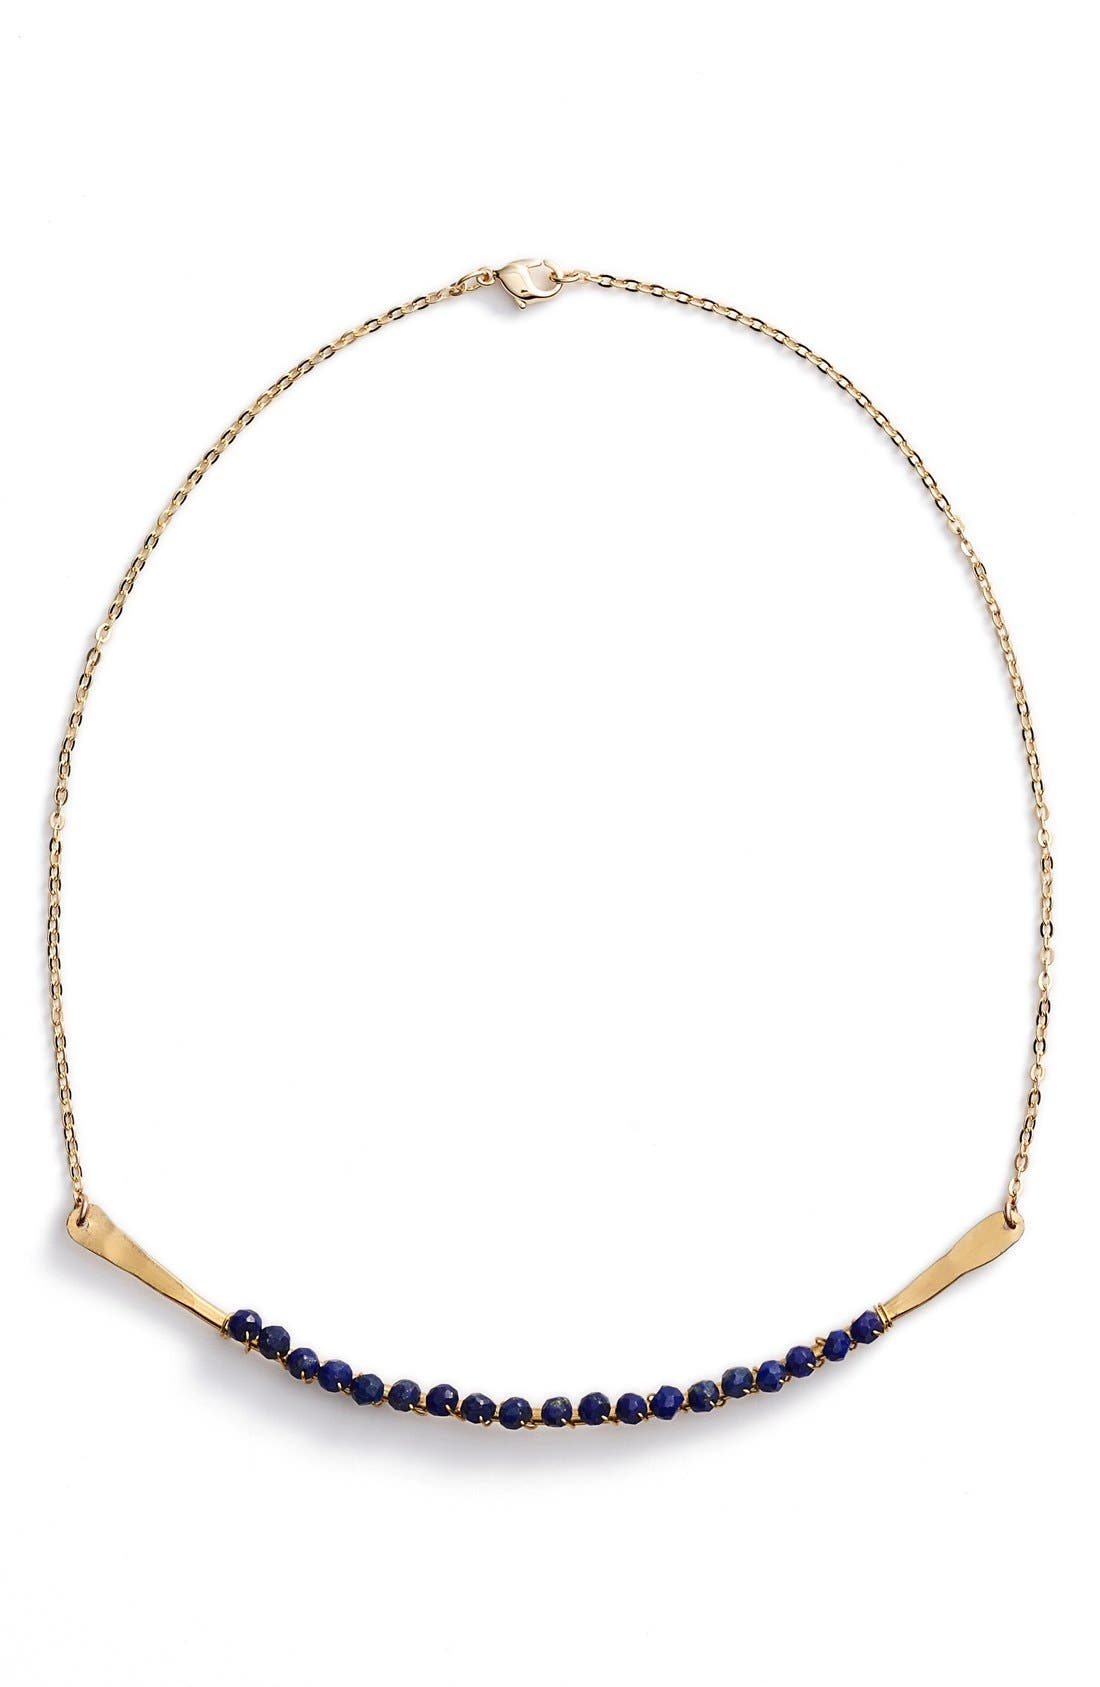 Main Image - five and two 'Phoebe' Lapis Bead Choker Necklace